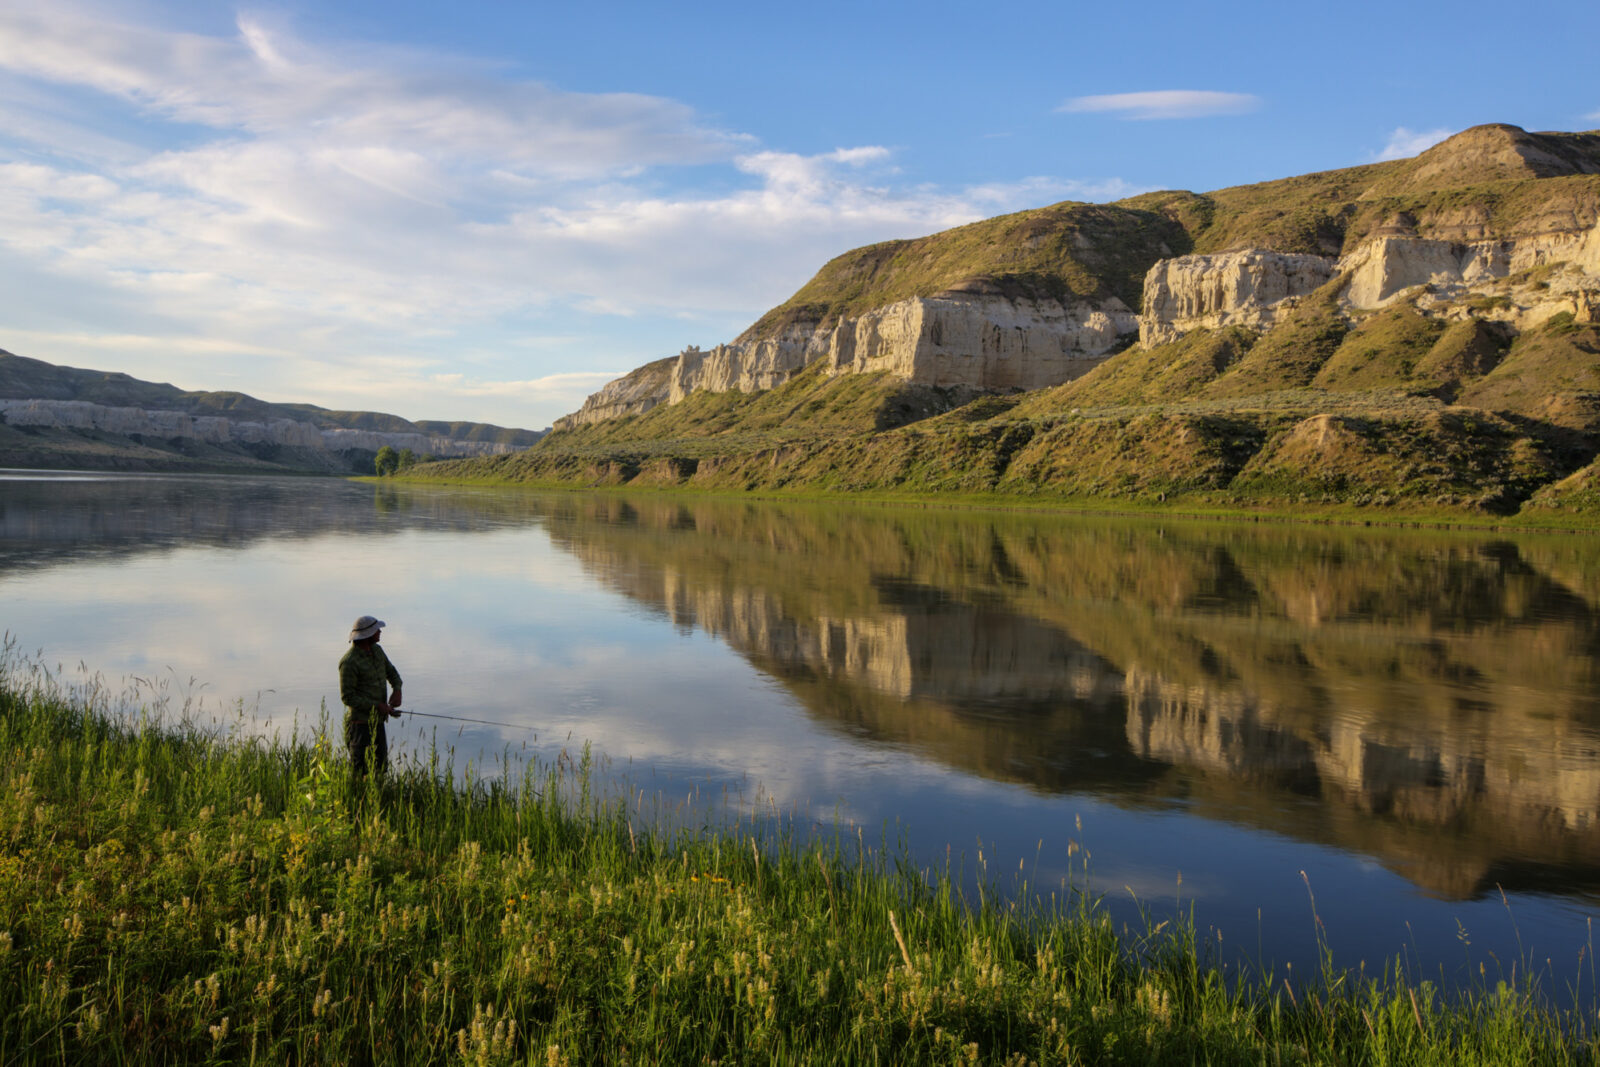 A photo of a fisherman along the river, with towering bluffs across the stream